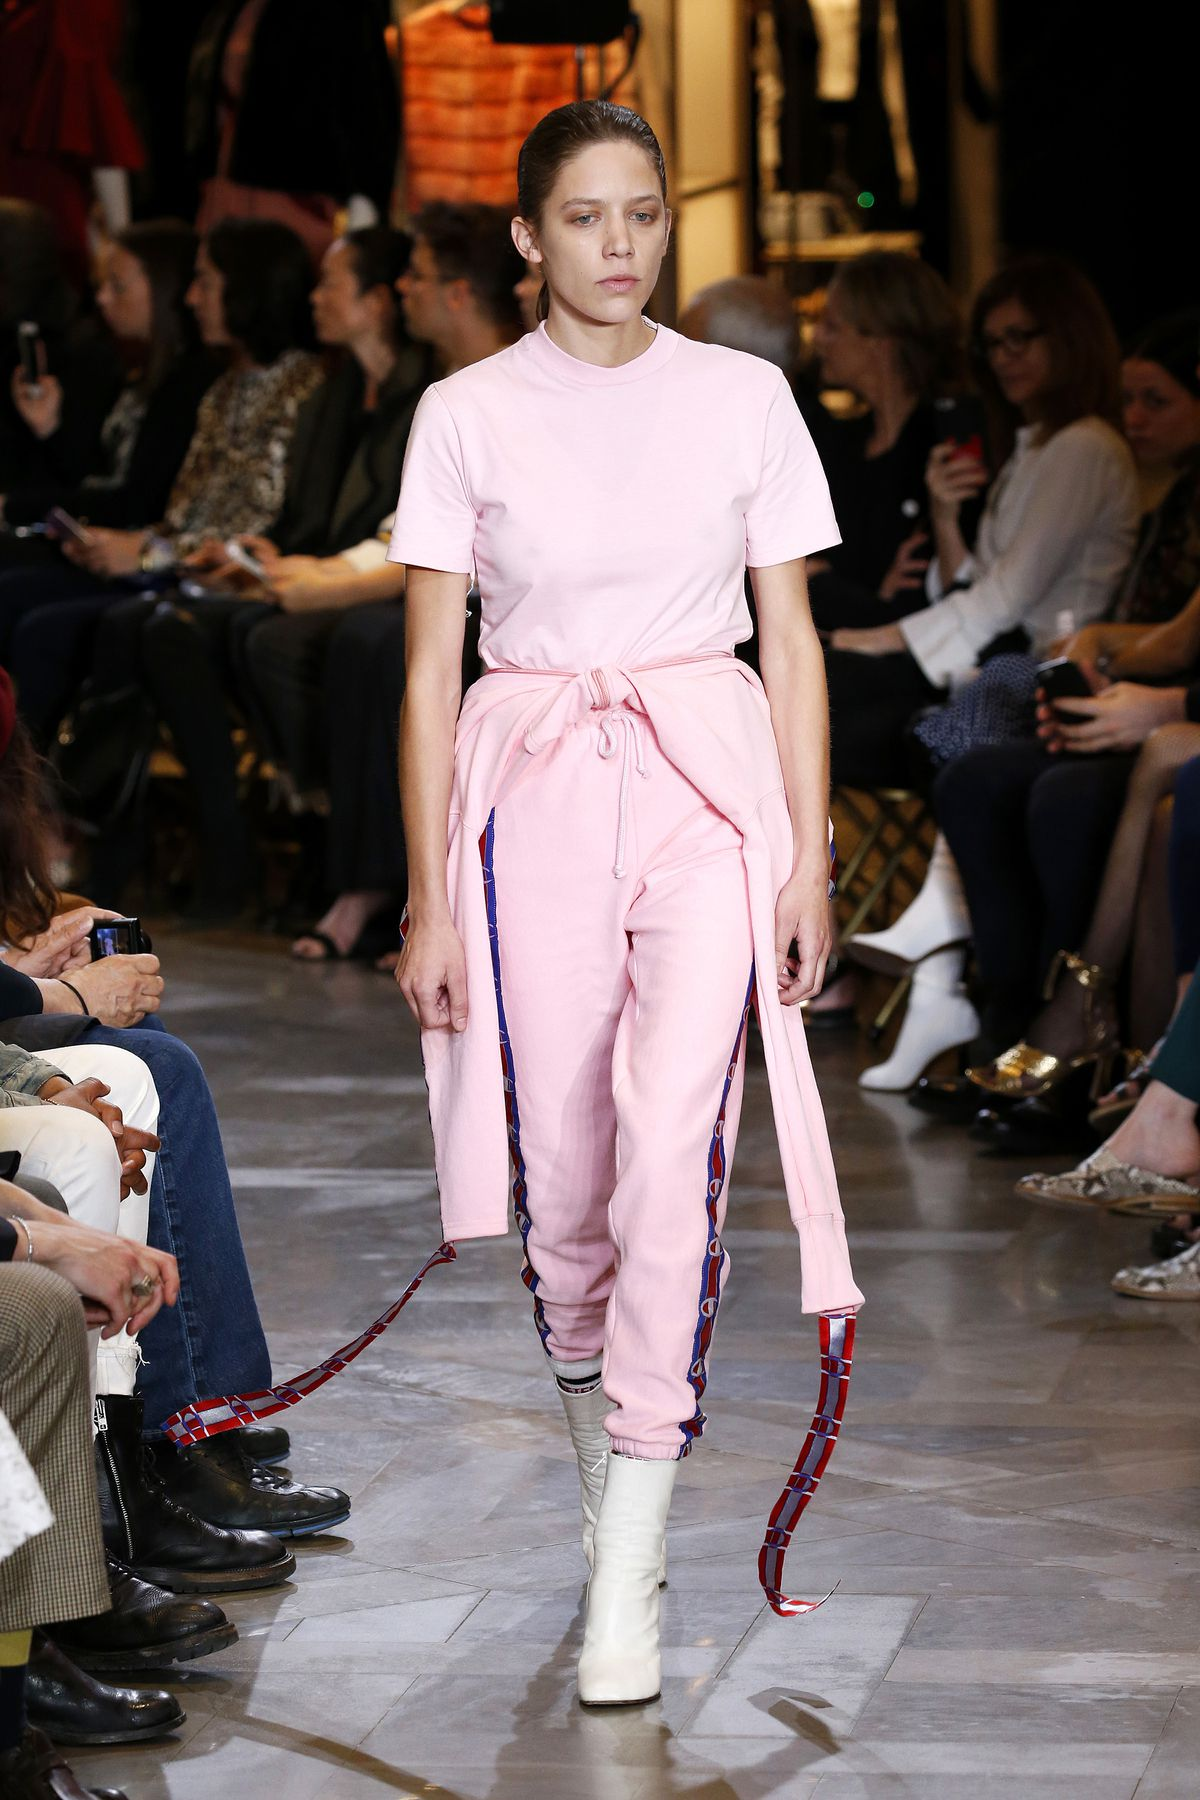 Model wearing pink Vetements x Champion outfit on the runway